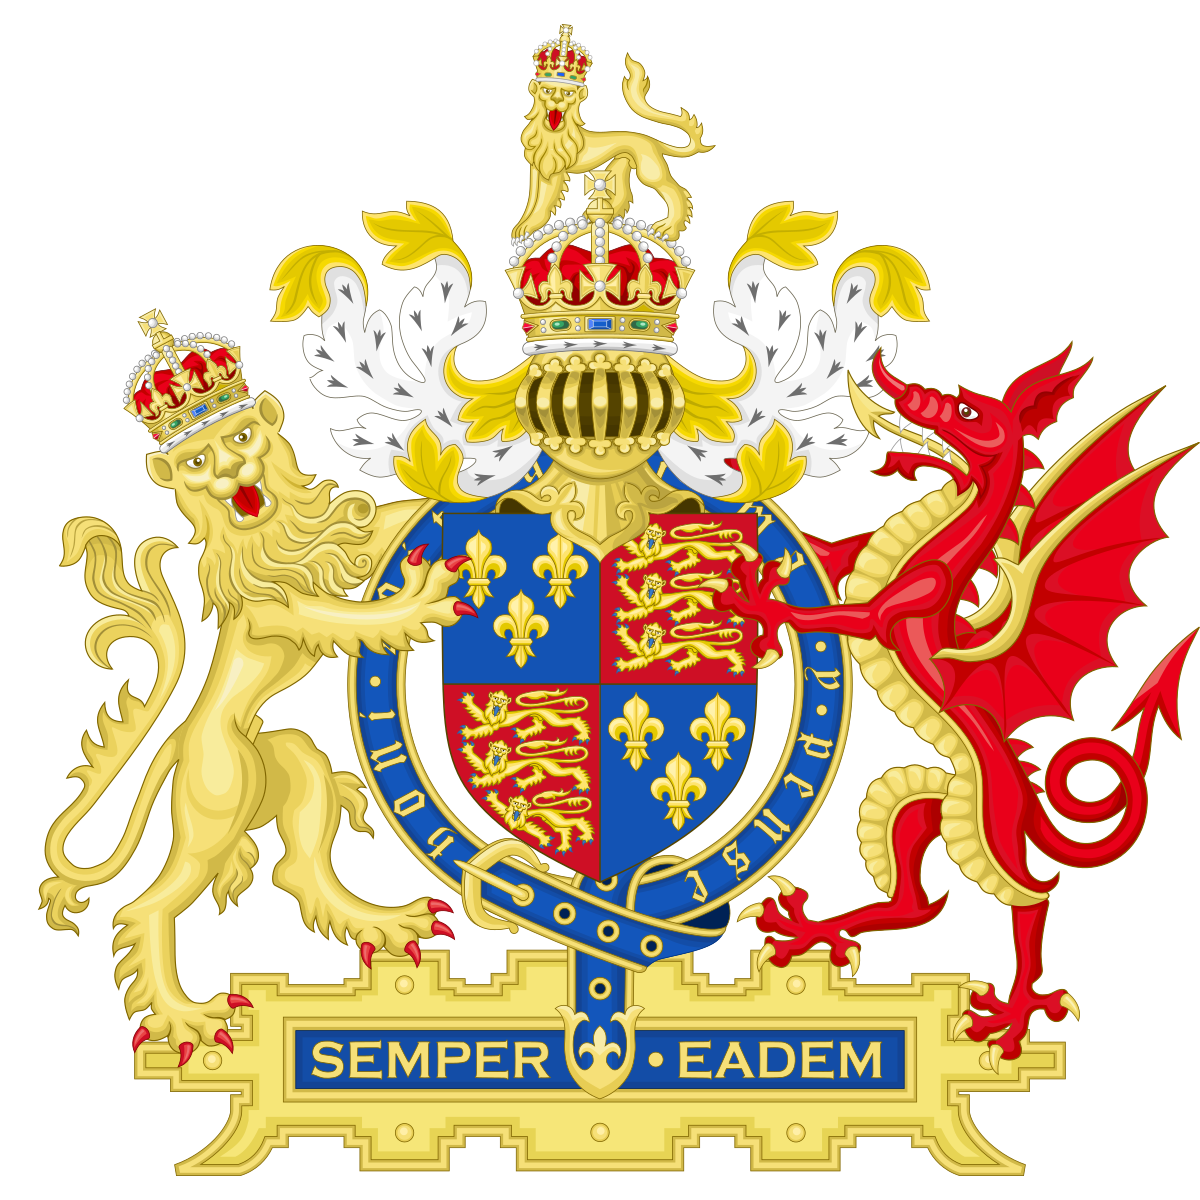 Parliament of england wikipedia. Voting clipart parliamentary democracy